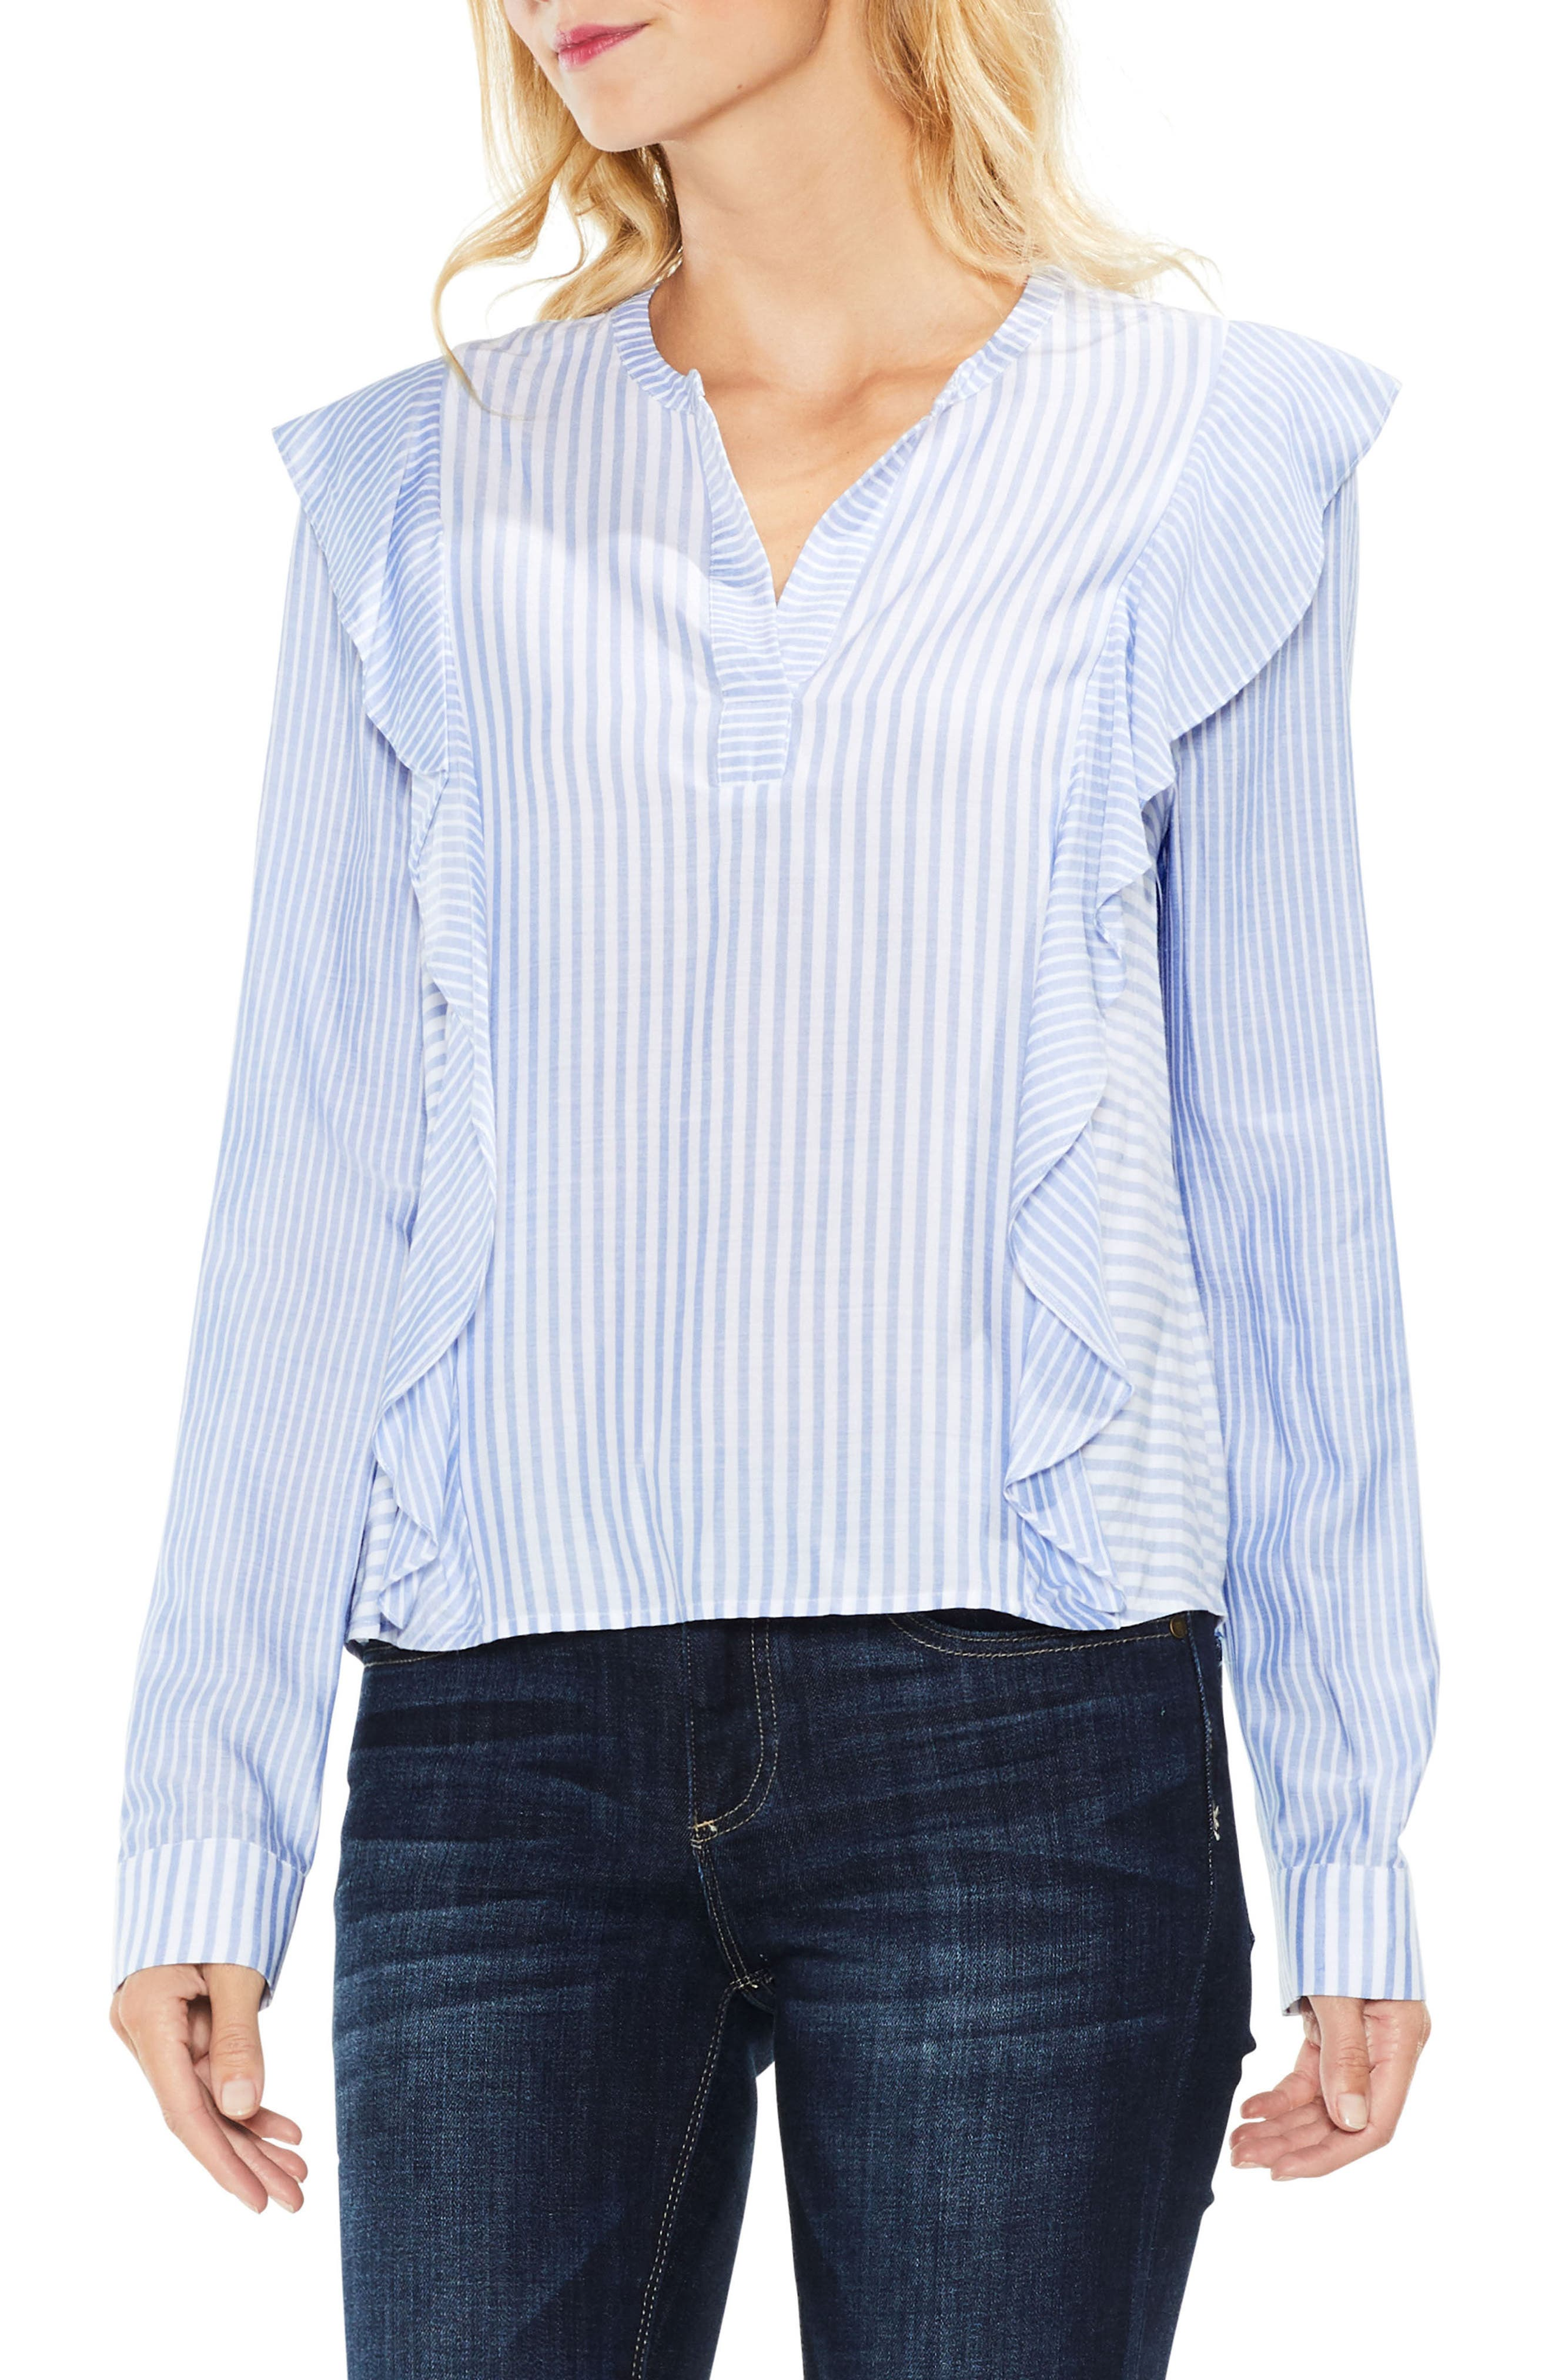 Alternate Image 1 Selected - Two by Vince Camuto Mix Stripe Ruffle Top